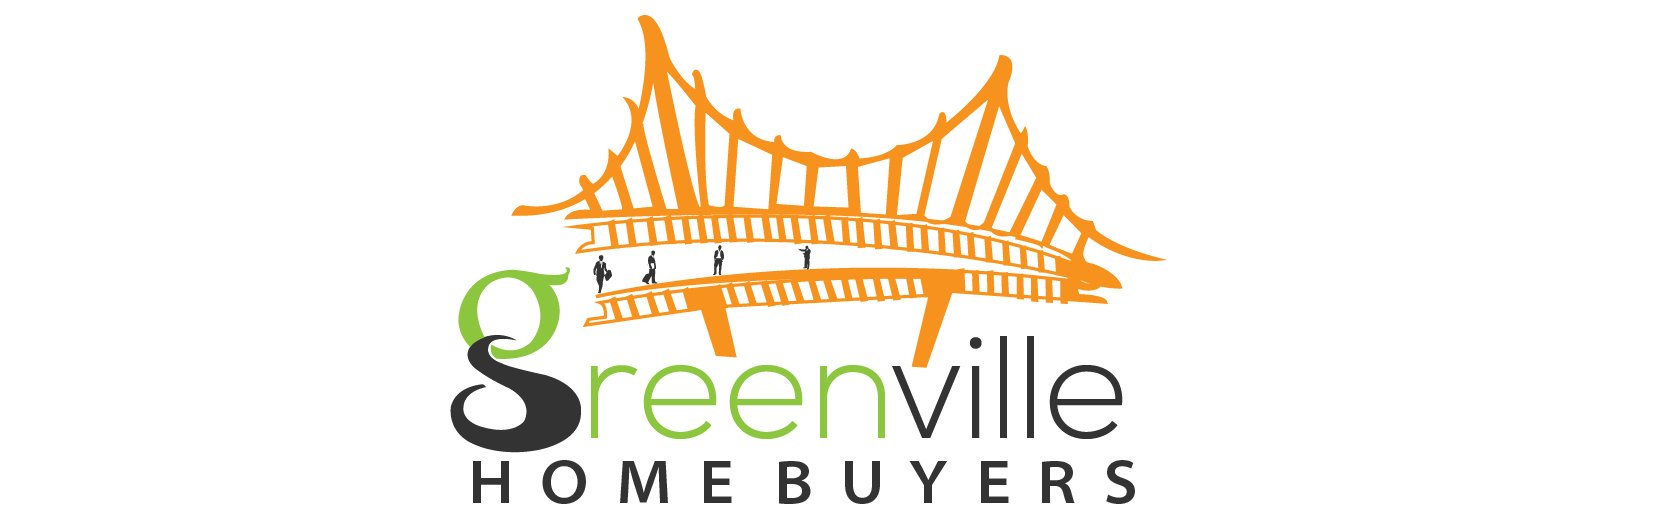 Greenville Home Buyers - We Buy Houses - Sell your house